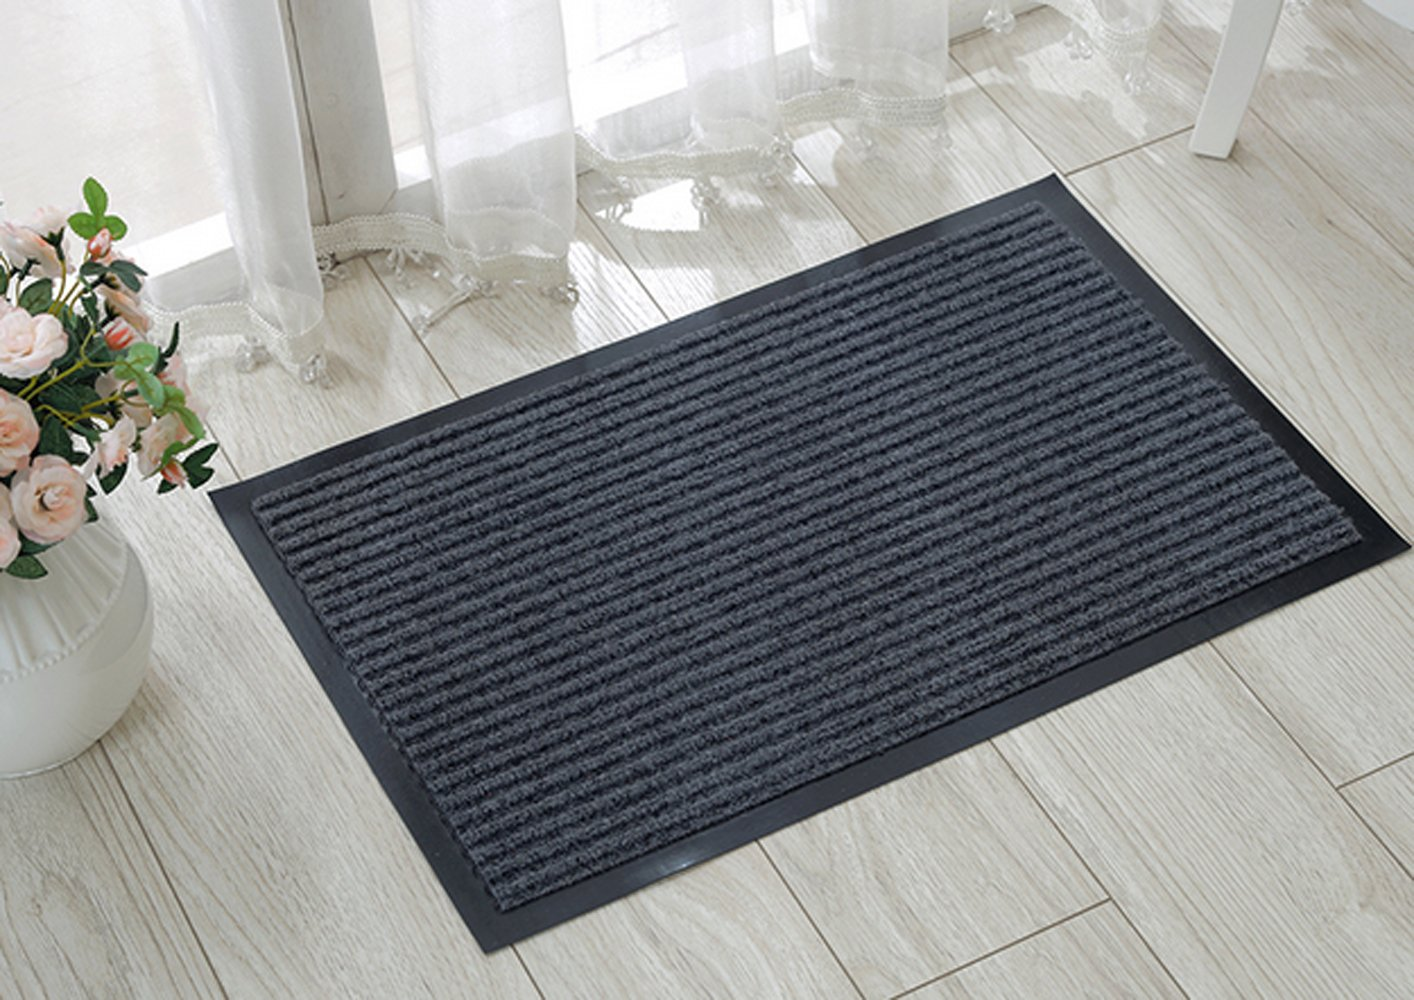 ribbed com mat floormats door mats by floor are